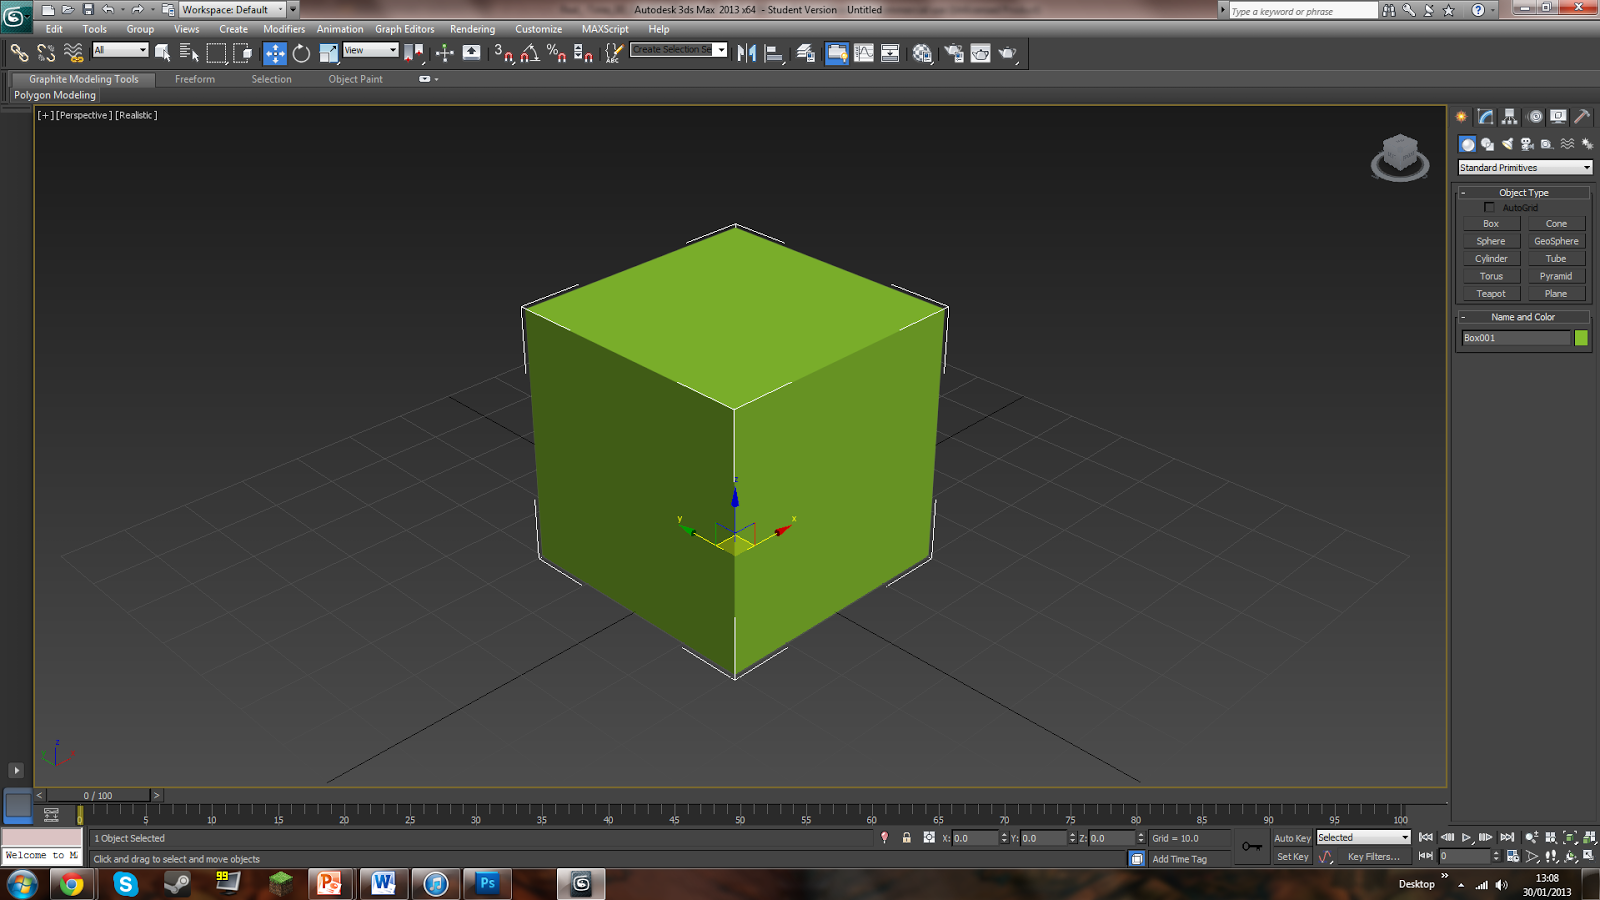 next i created a plain cube in 3ds max on which i will be applying the palm texture and normal map